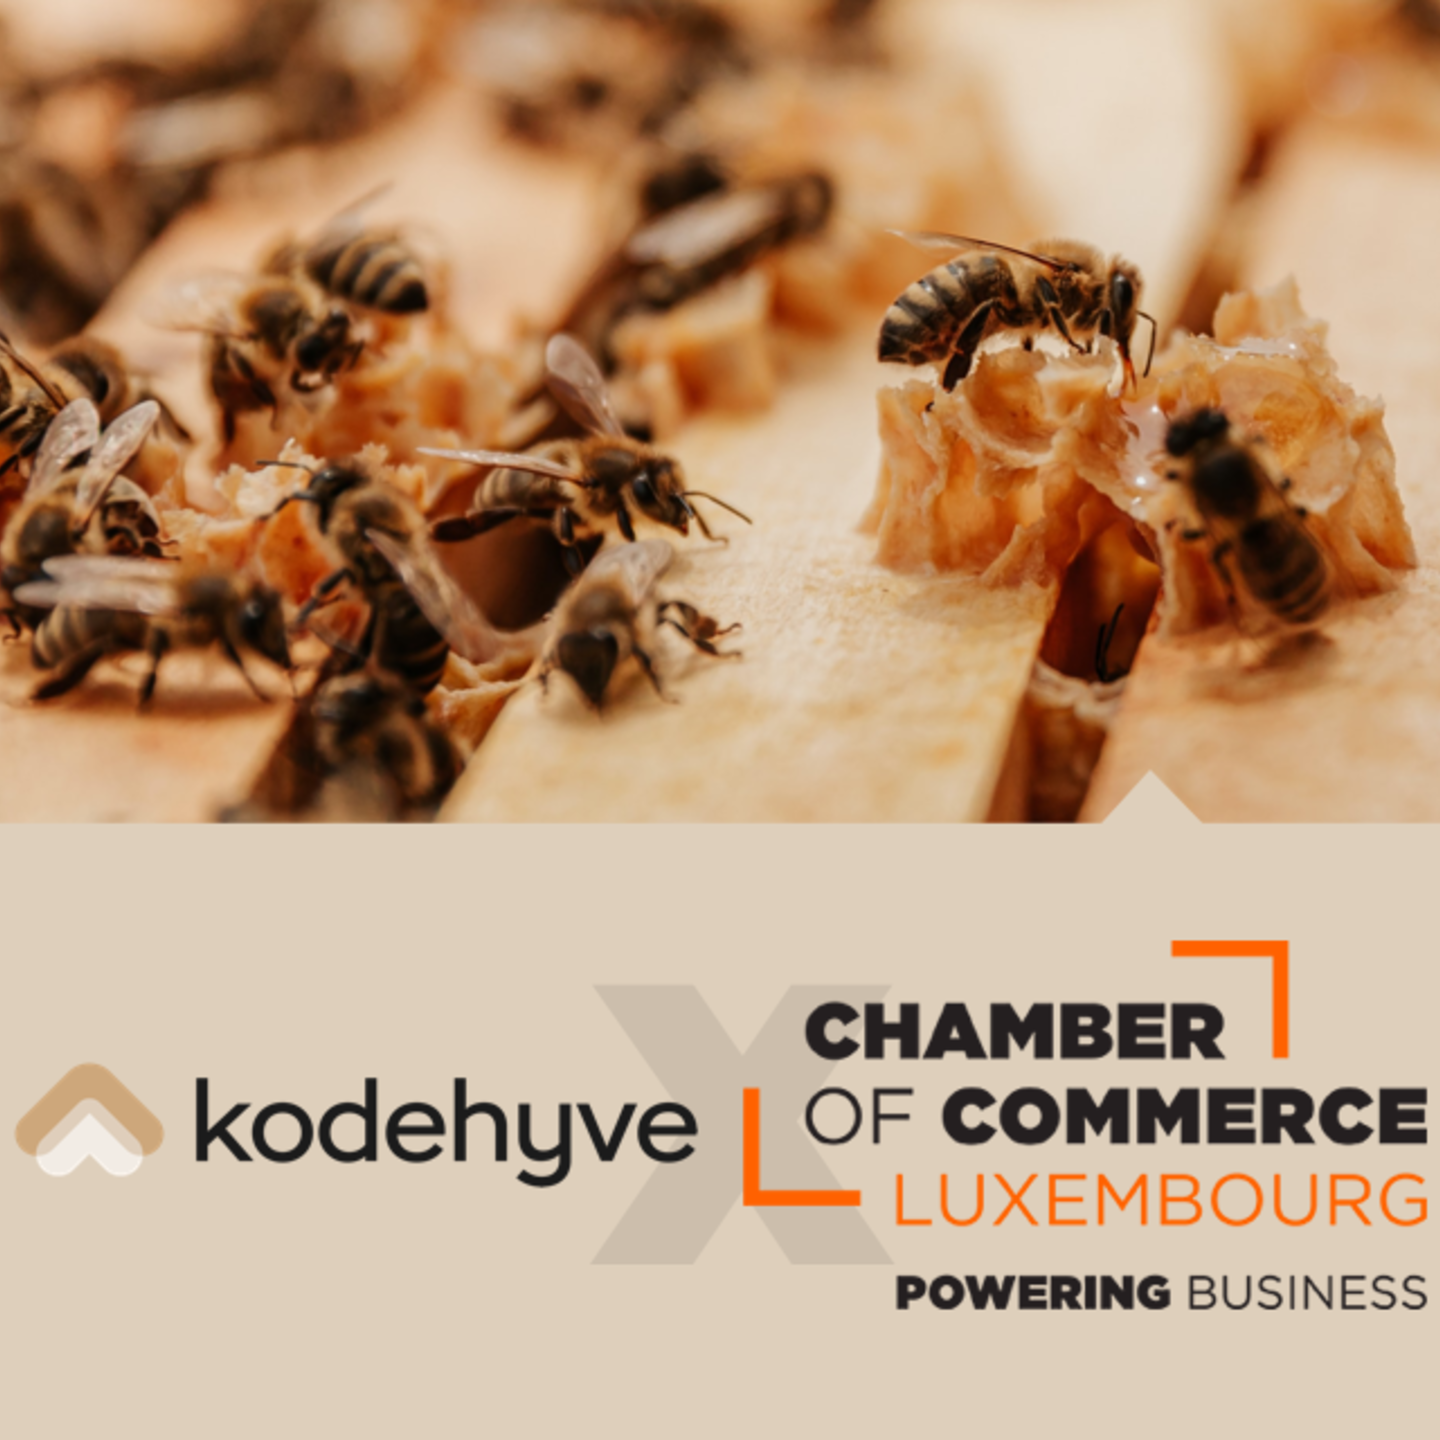 kodehyve and Chamber of Commerce Luxembourg talking entrepreneurship & bees